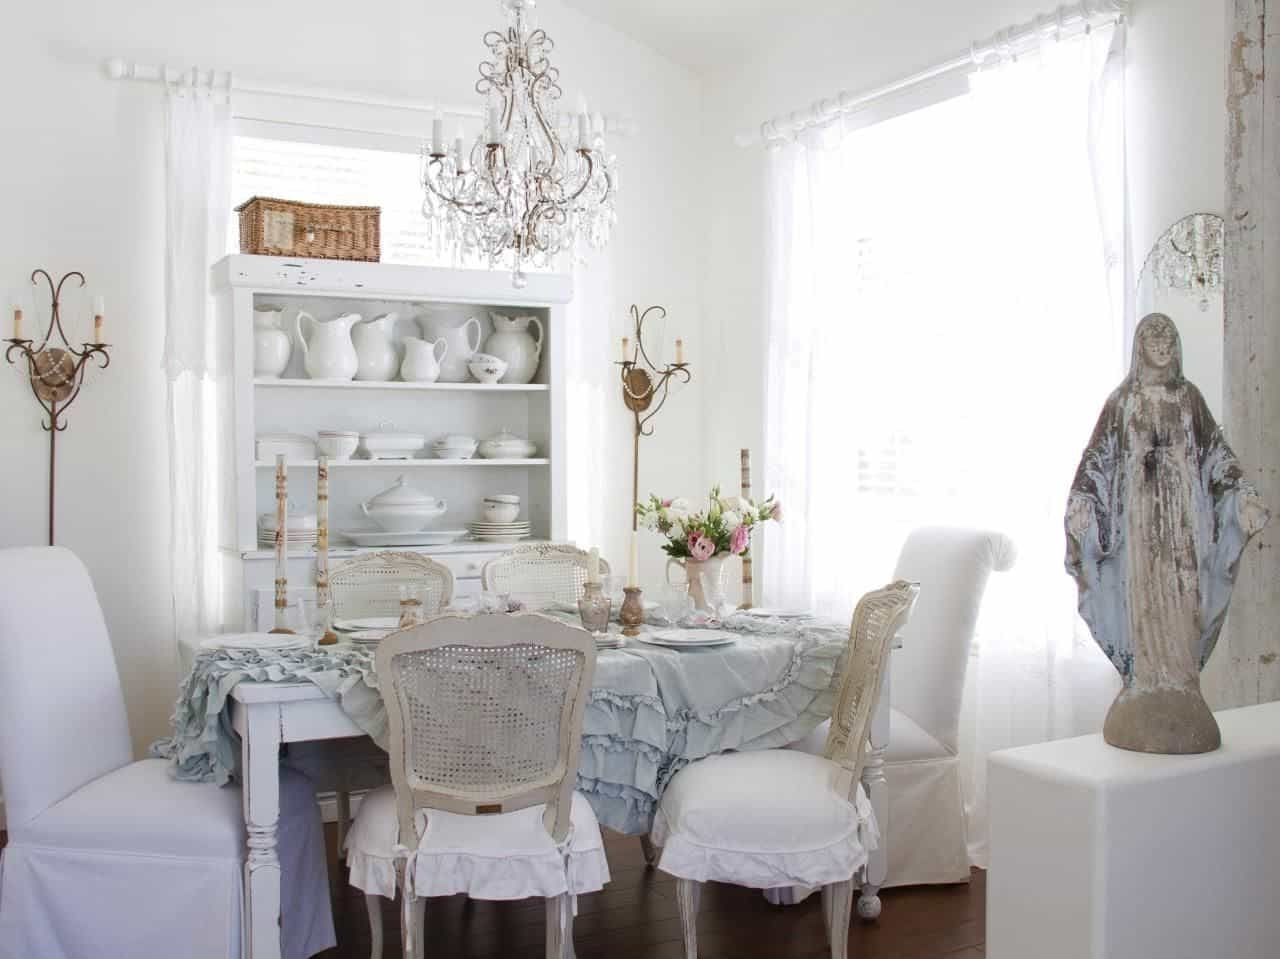 Soothing Shabby Chic Dining Room With White Walls And Small Regarding Fashionable Small Shabby Chic Chandelier (View 17 of 20)